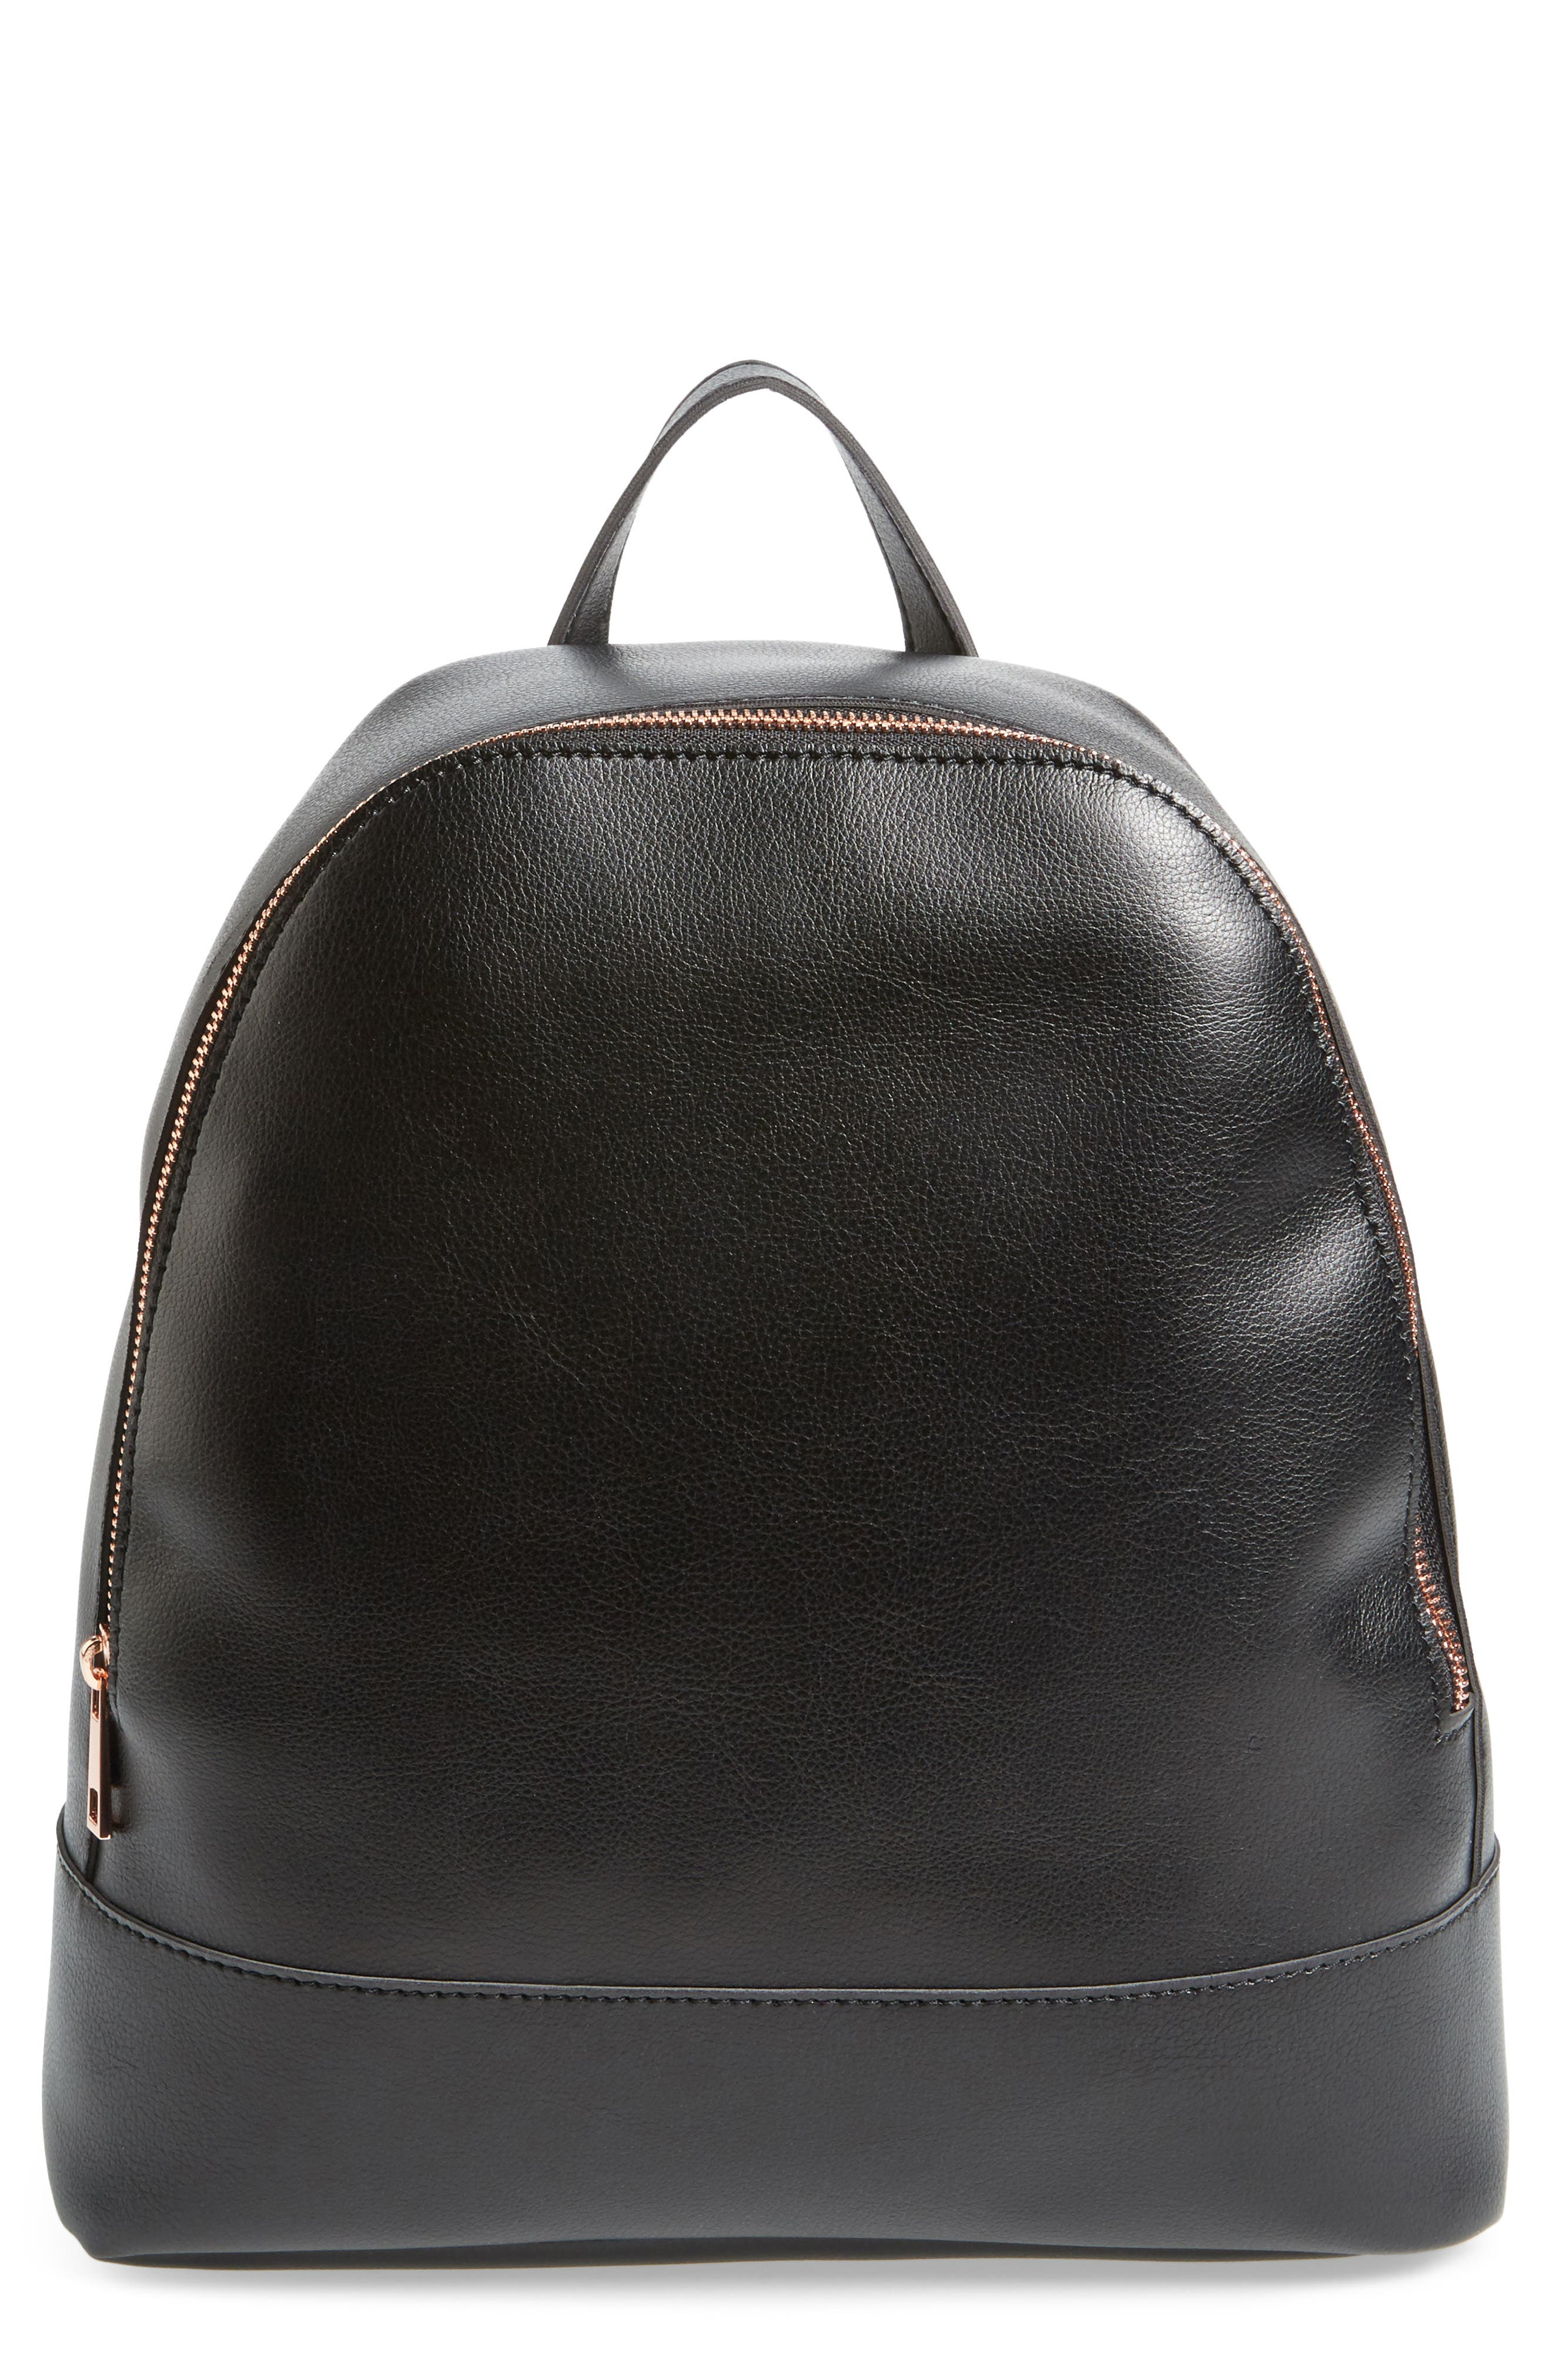 Alternate Image 1 Selected - Sole Society Chester Faux Leather Backpack